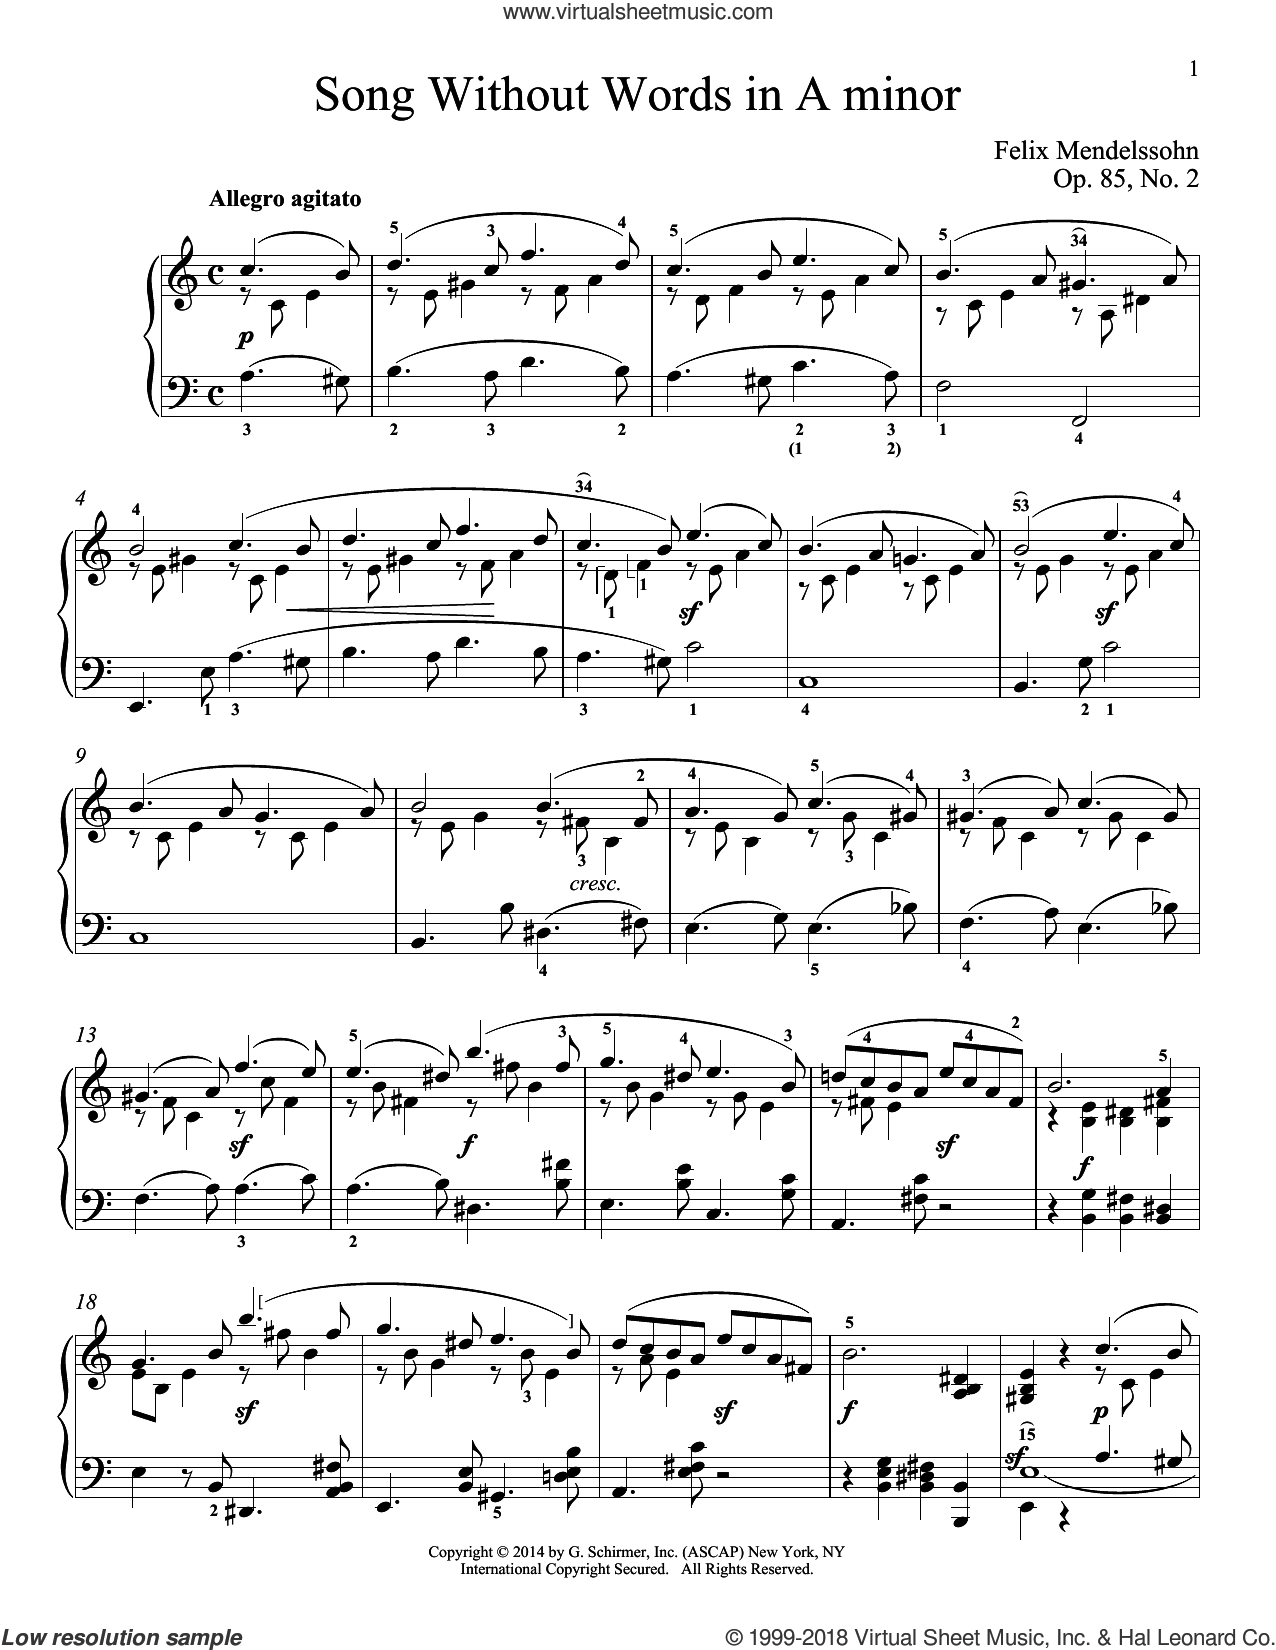 Song Without Words In A Minor, Op. 85, No. 2 sheet music for piano solo by Felix Mendelssohn-Bartholdy and Immanuela Gruenberg, classical score, intermediate skill level